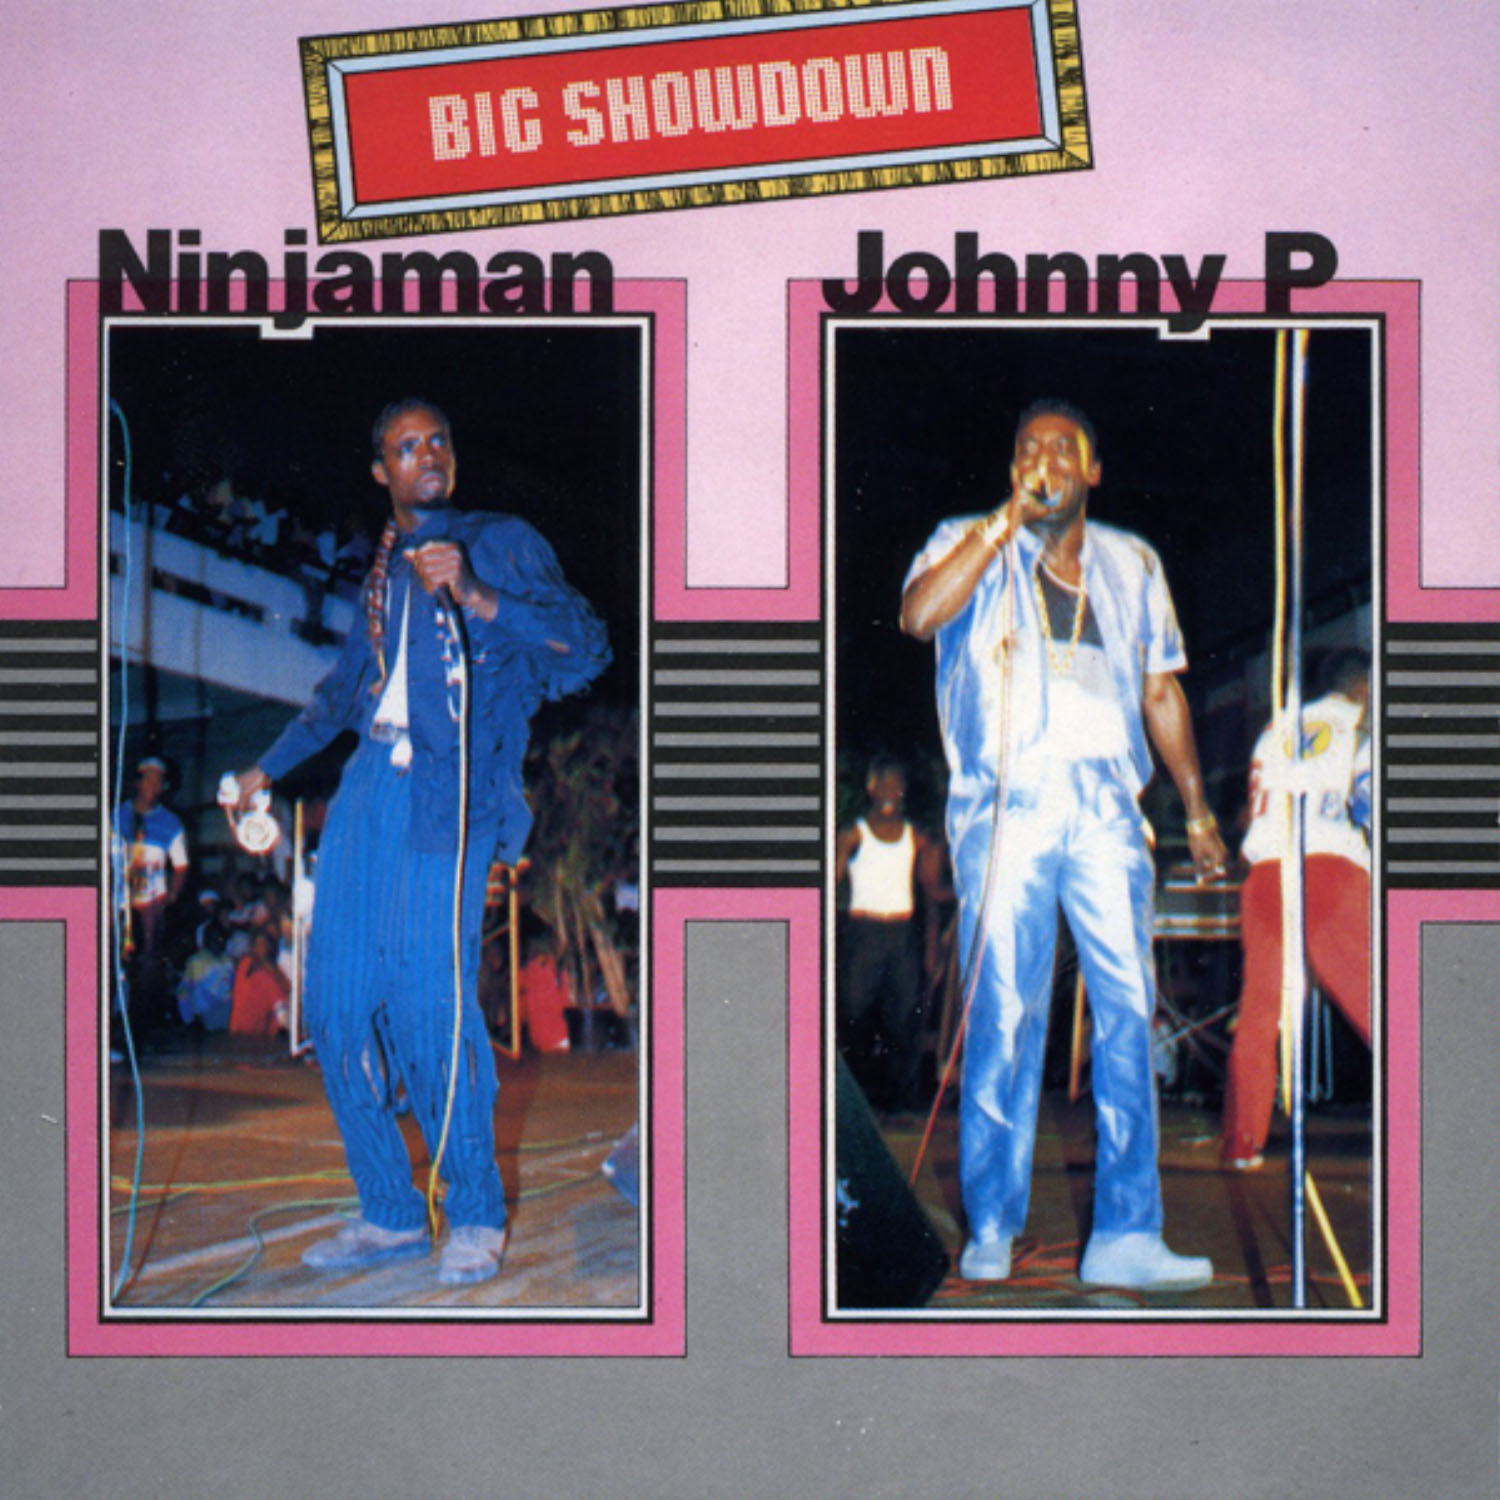 Big Showdown: Ninjaman and Johnny P